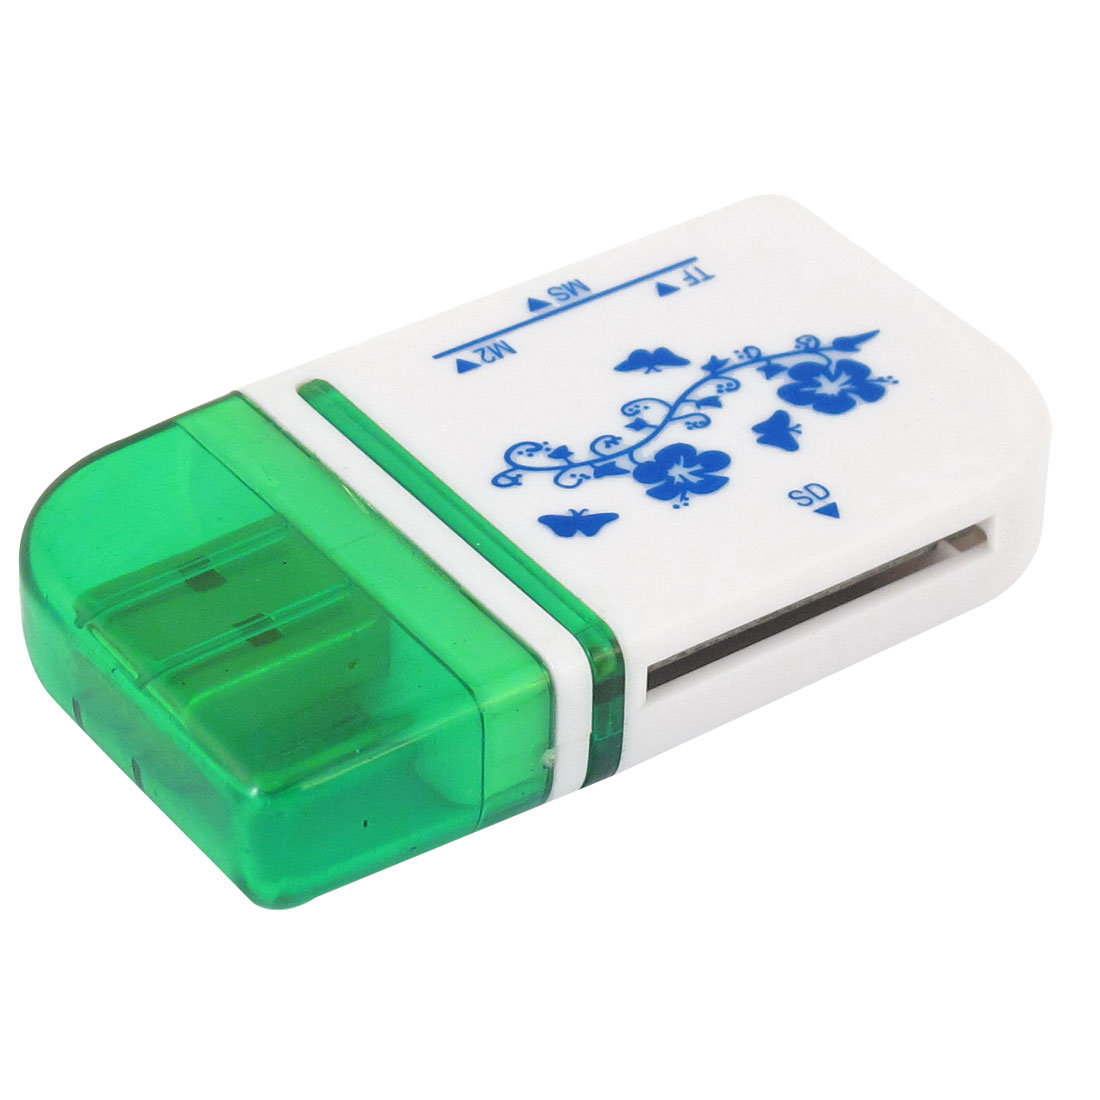 Plastic Clear Green White Blue USB 2.0 SD MMC TF M2 Multislot Memory Card Reader